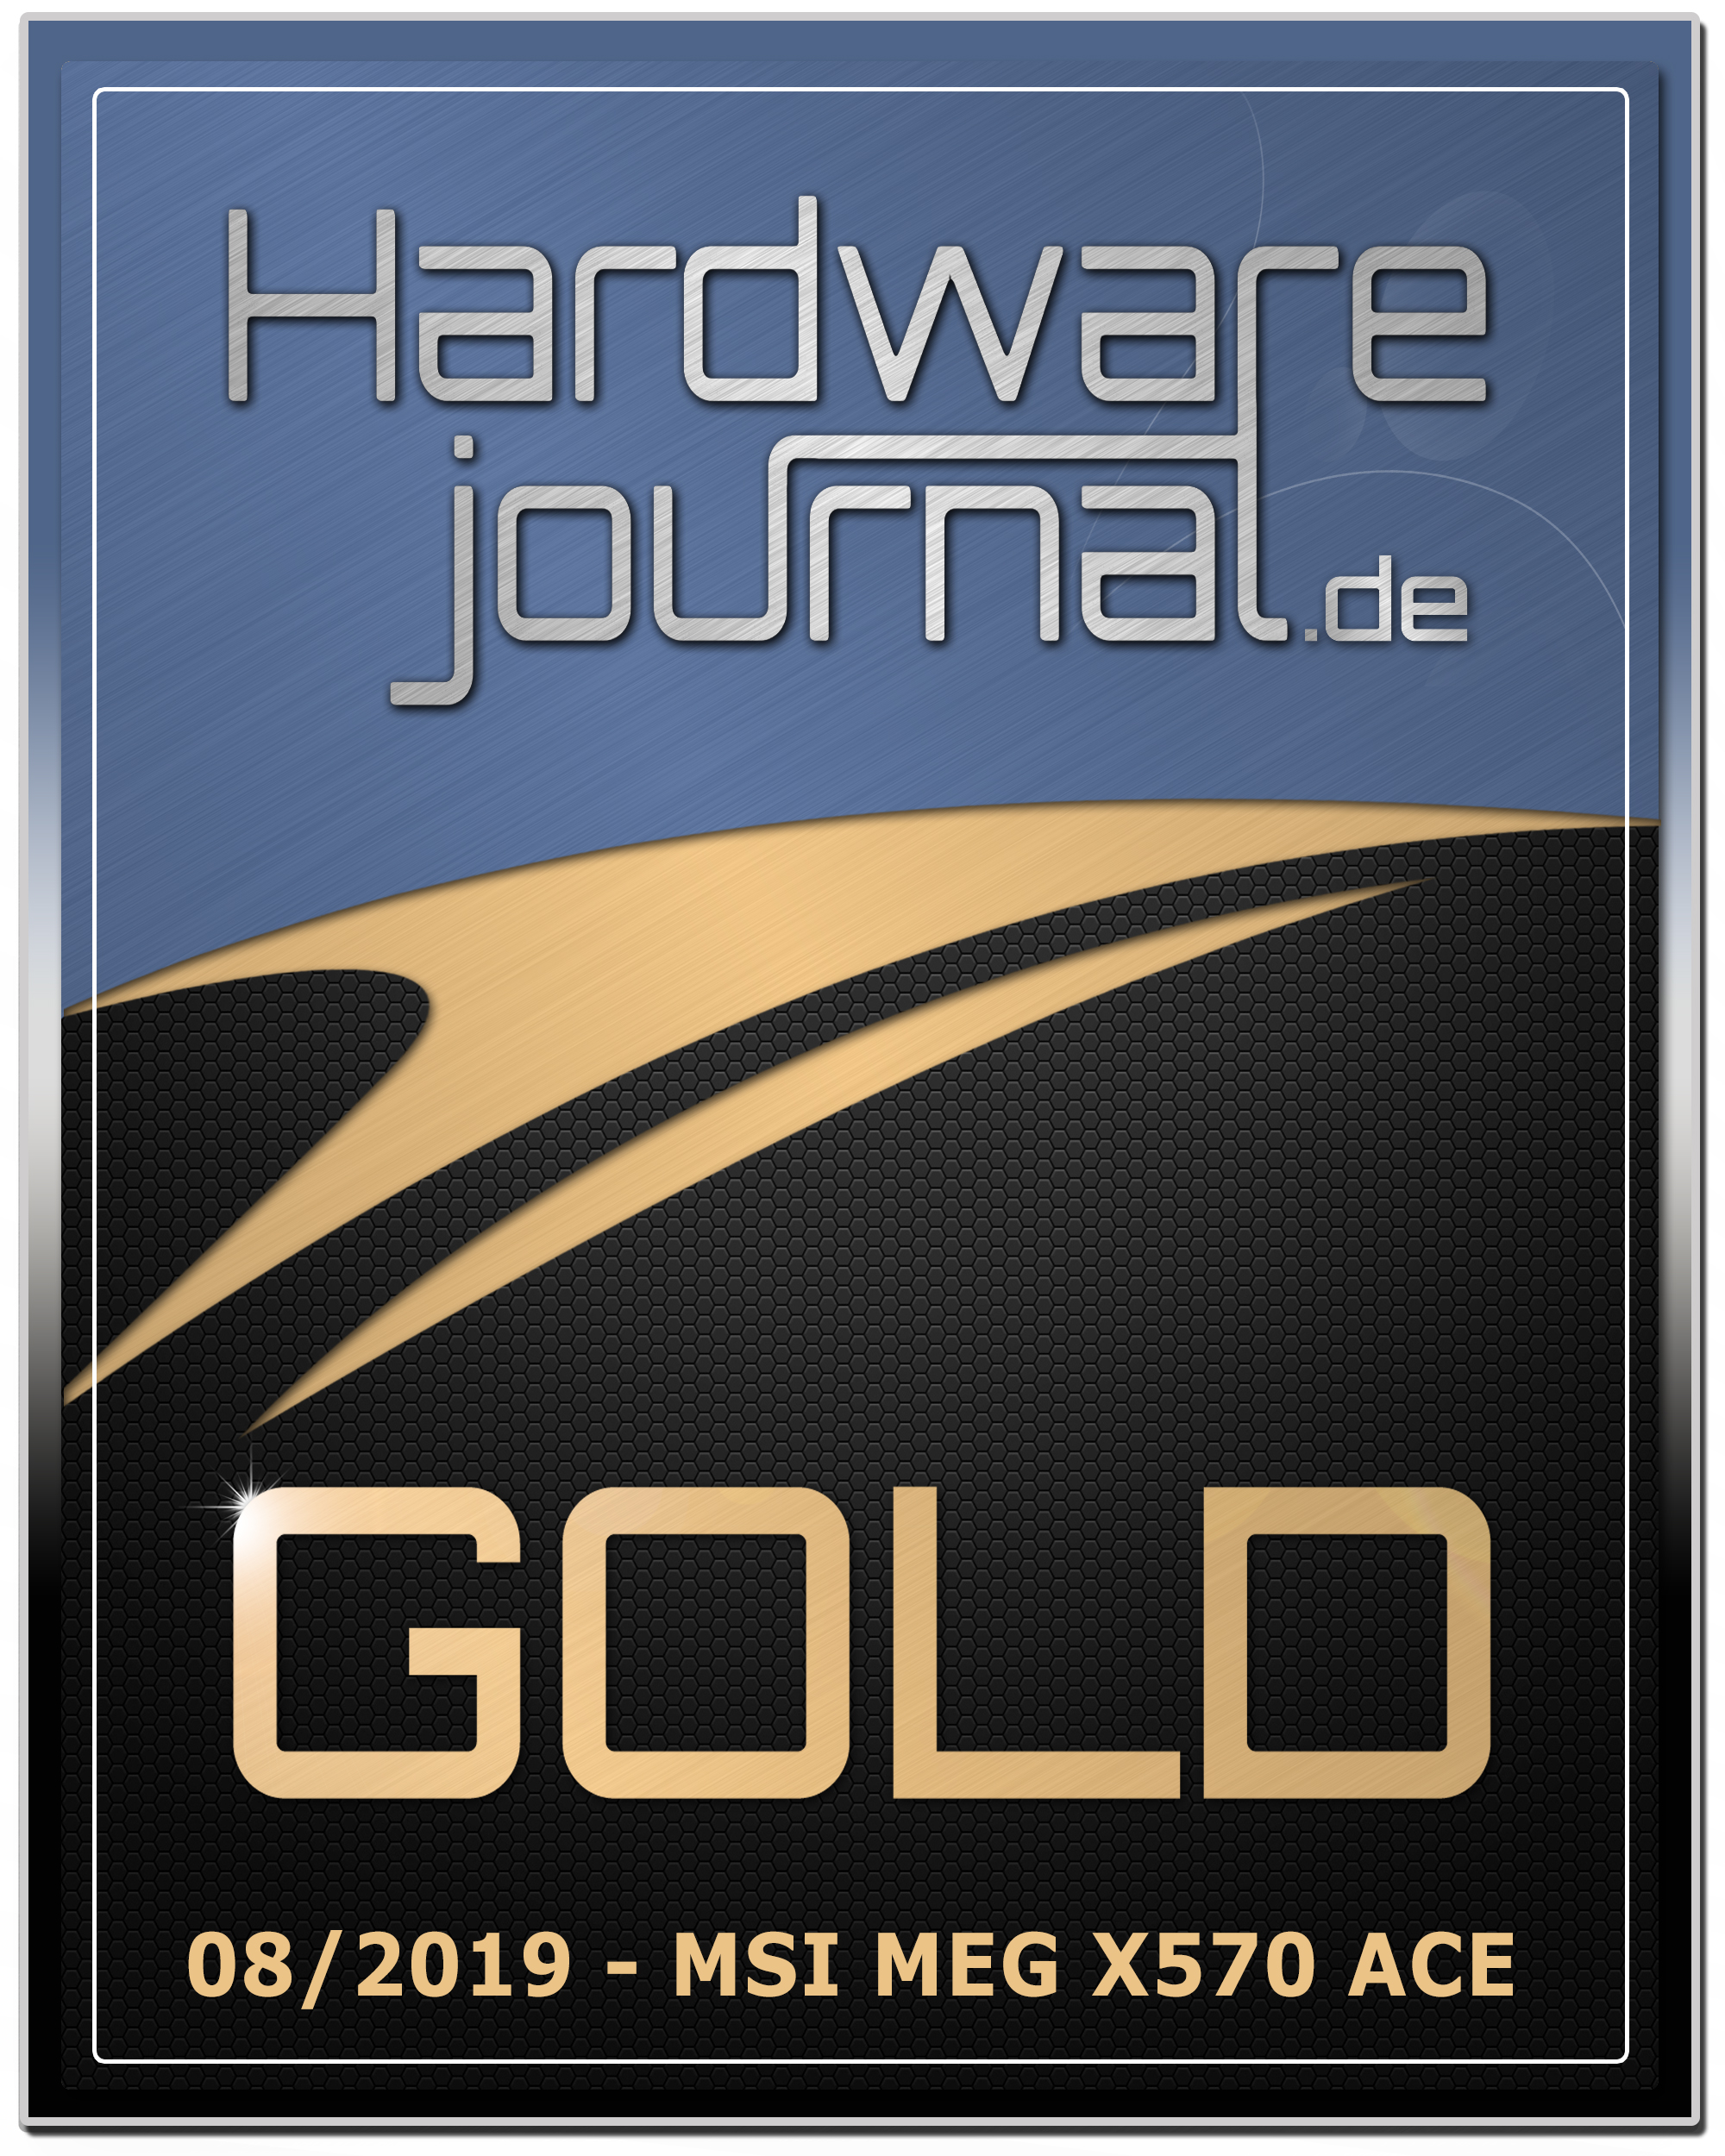 MSI MEG X570 ACE Gold Award Hardware Journal